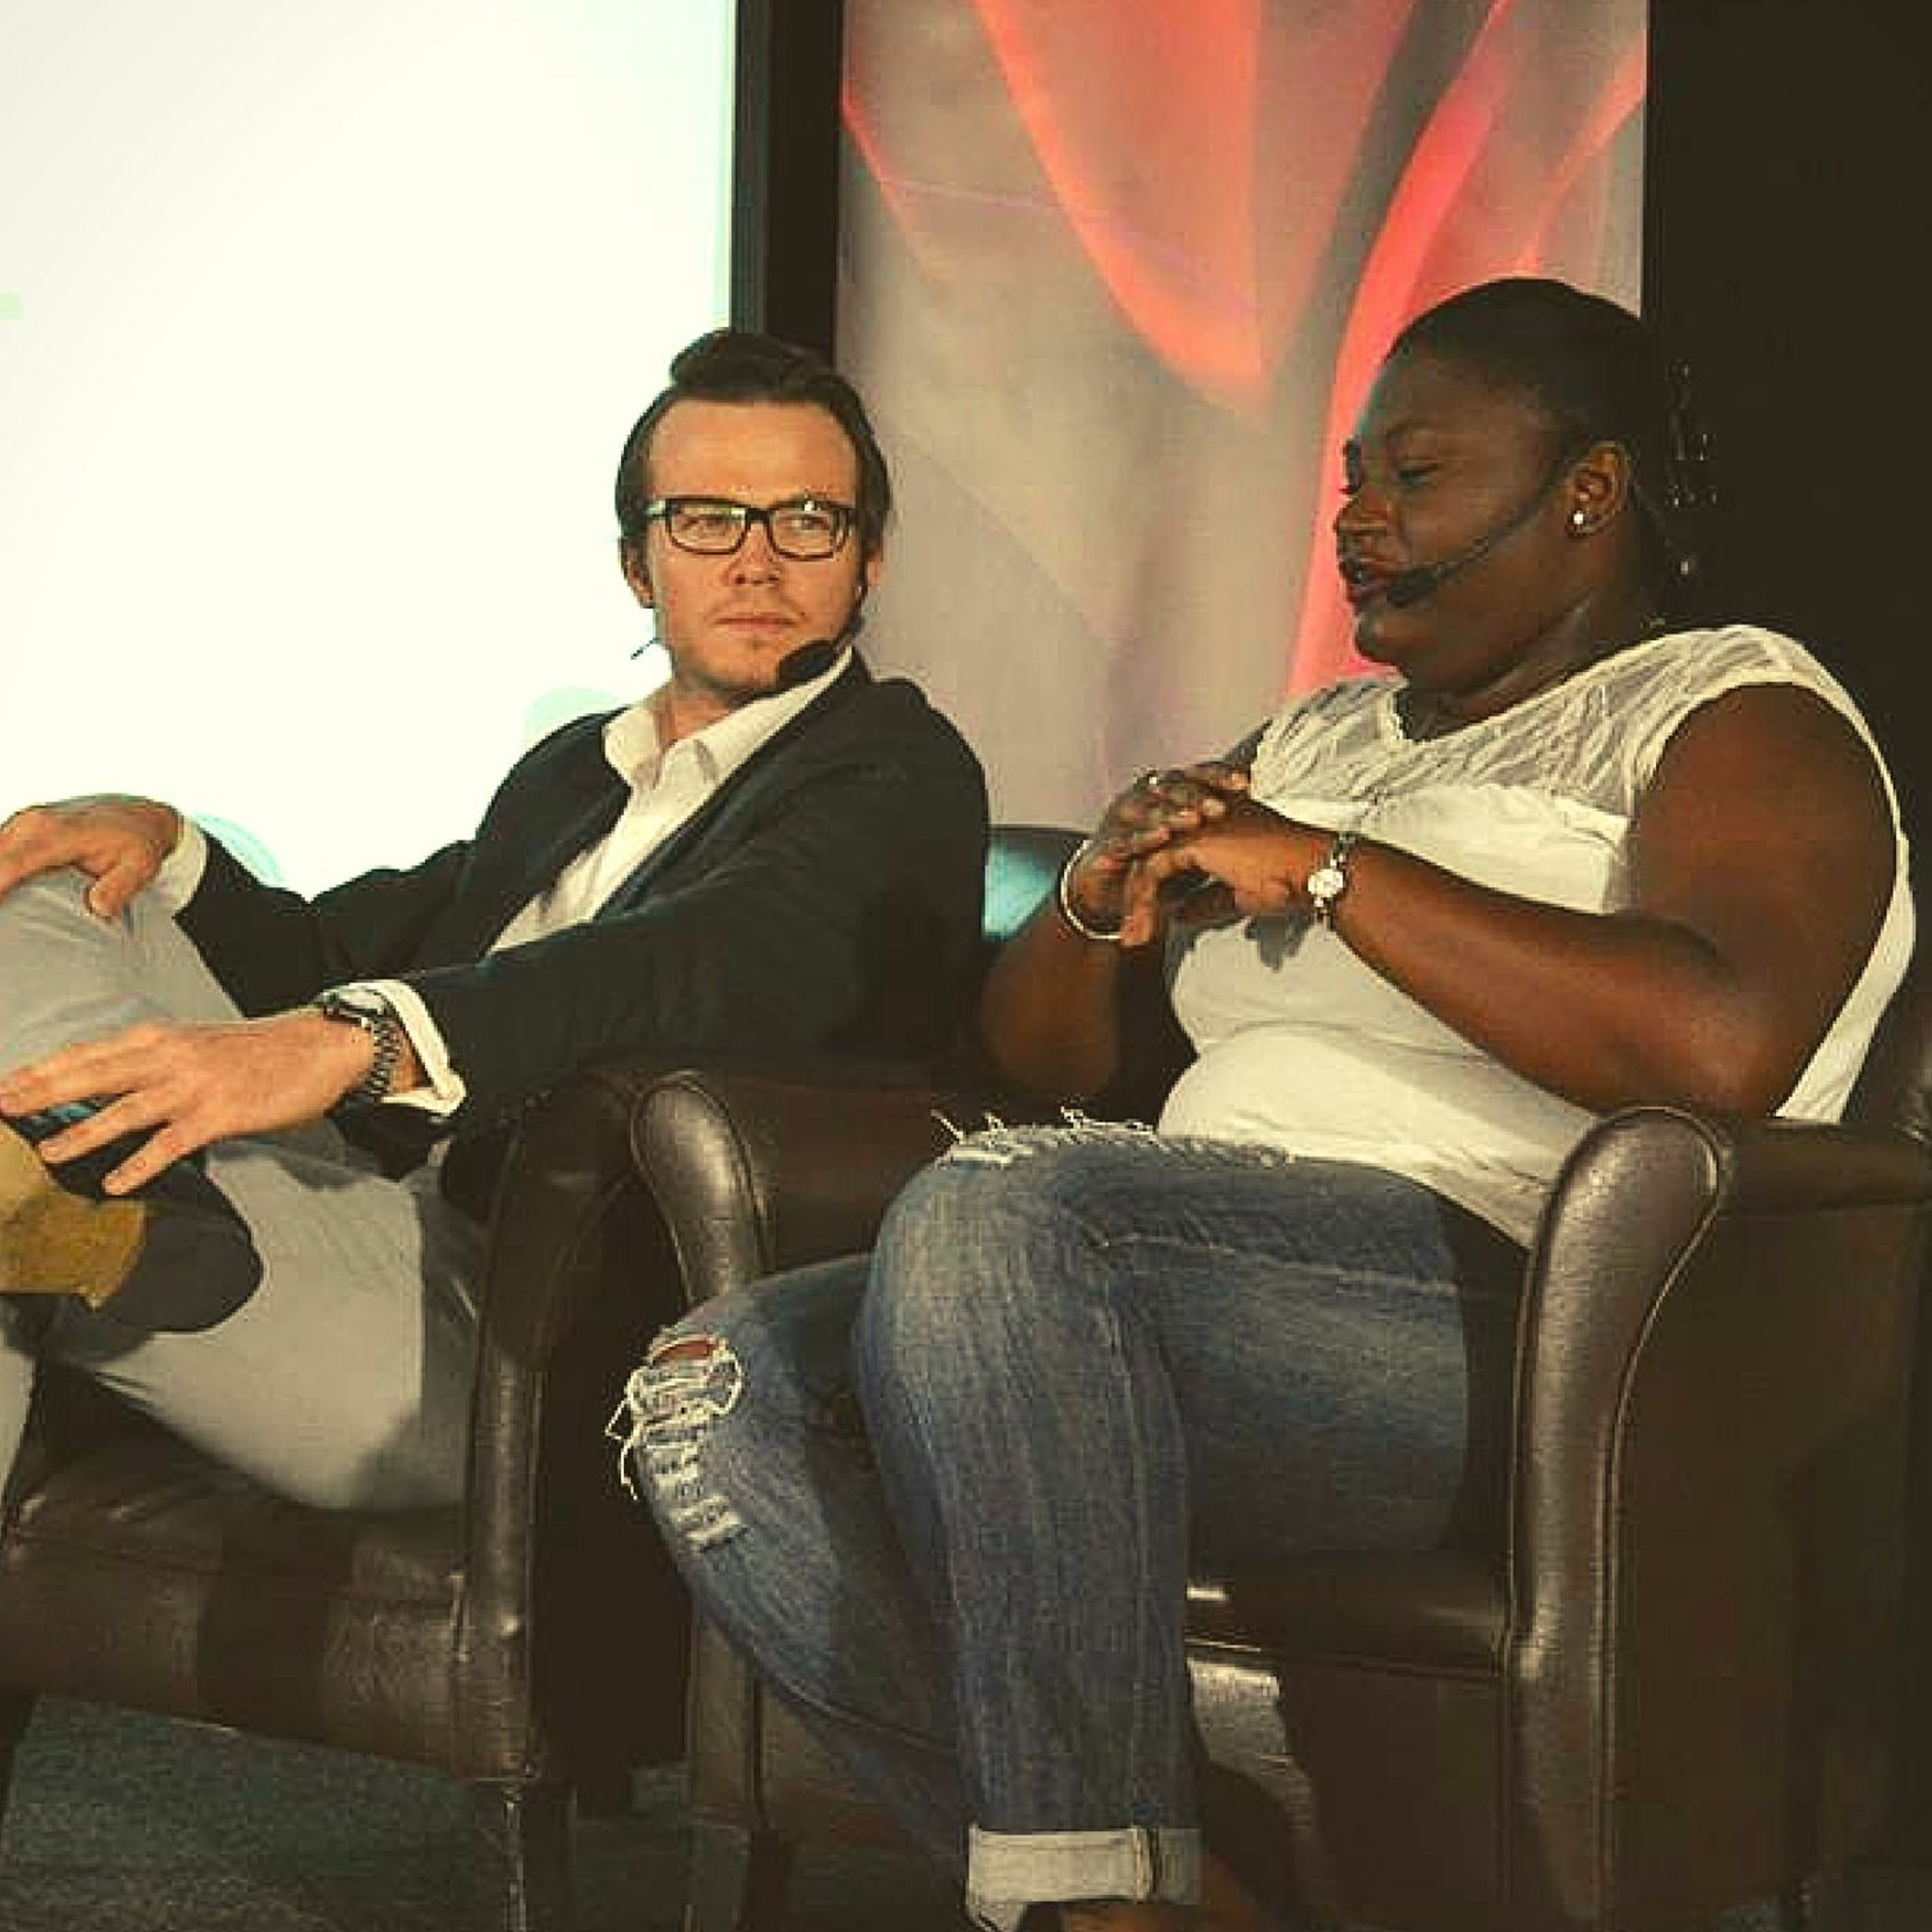 Andrew Taylor & Mich Atagana Discuss 2015 Tech Startup Trends For Africa